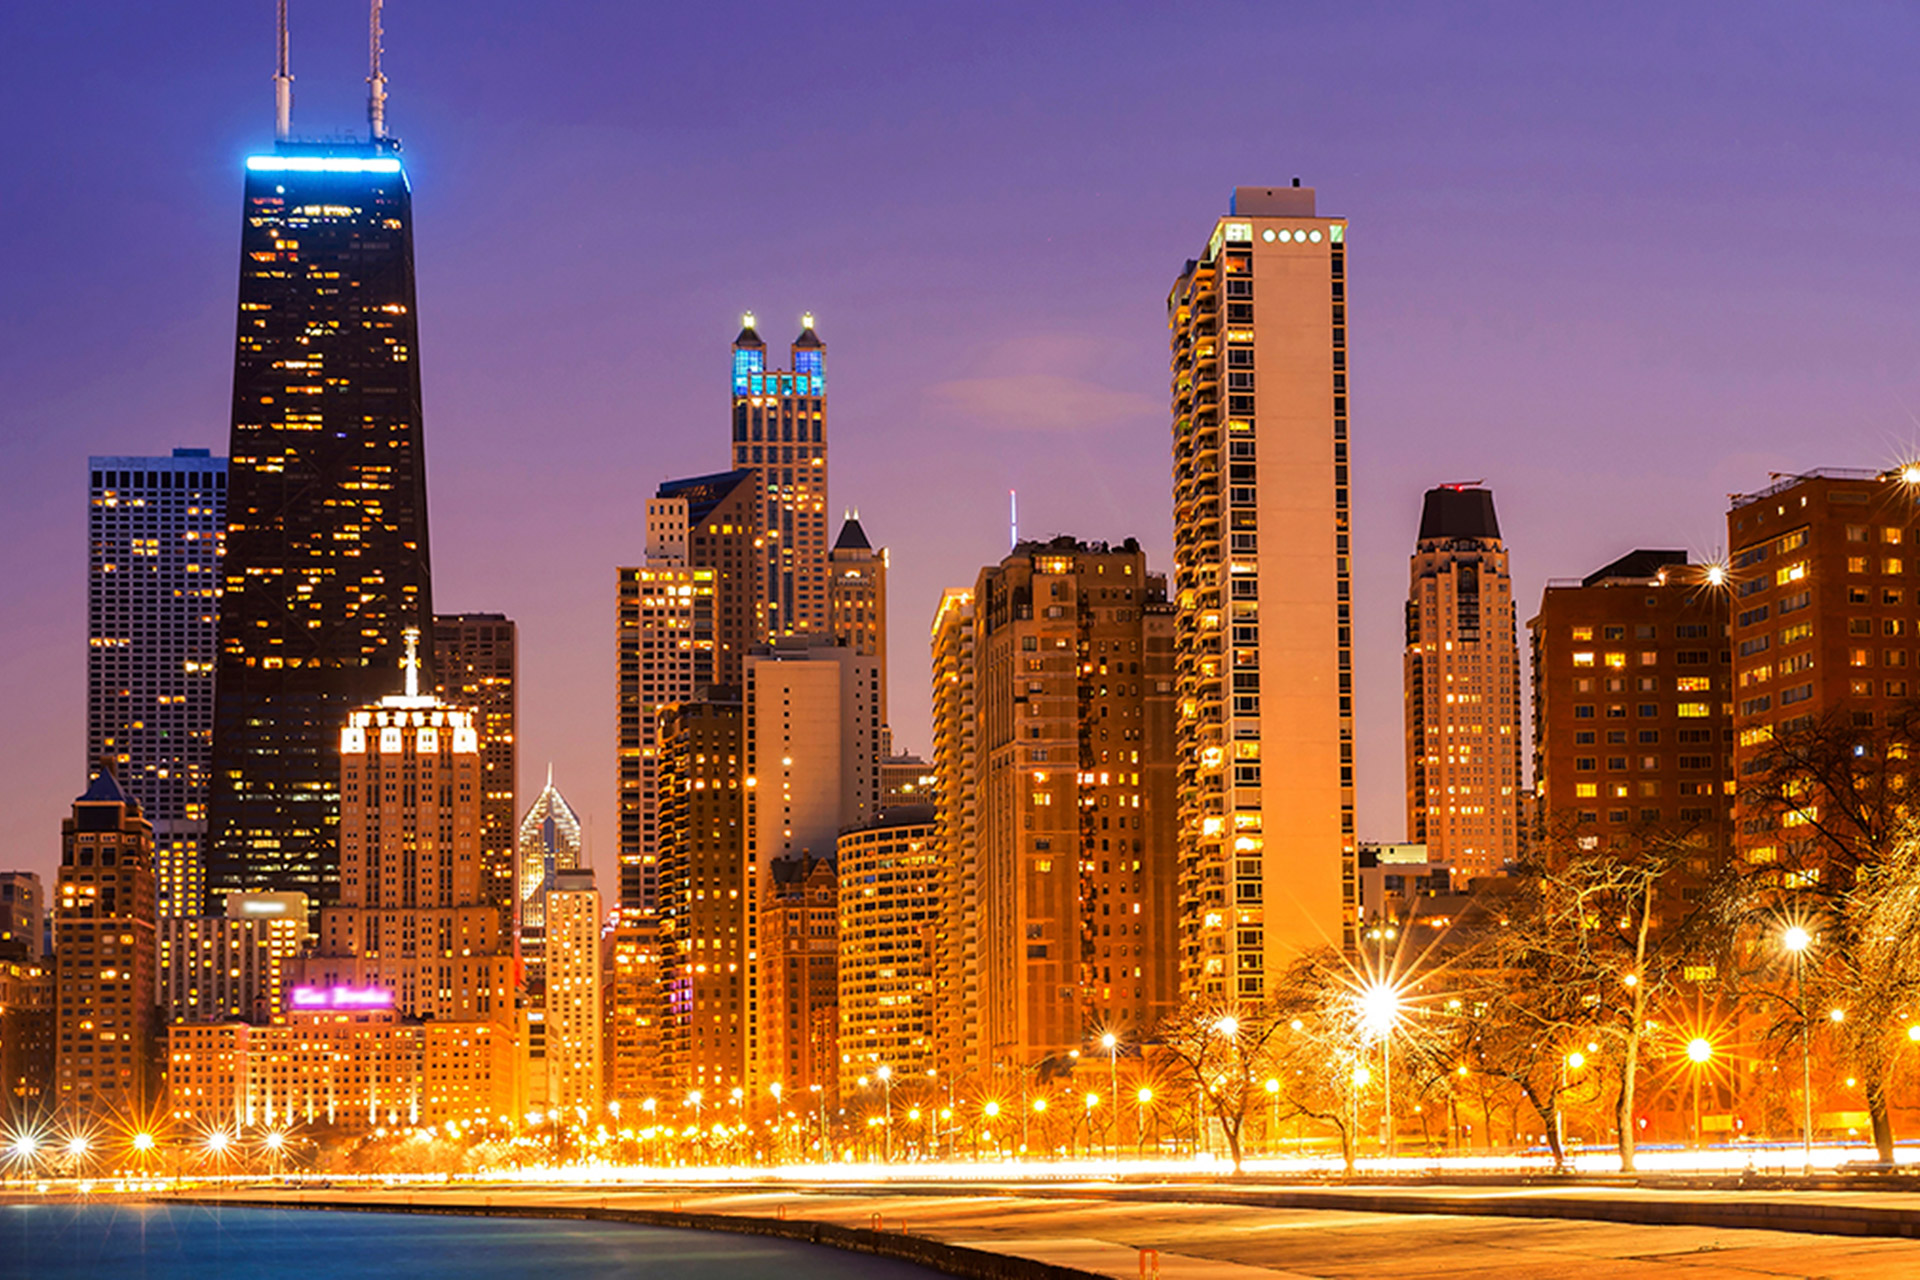 Downtown Chicago skyline at night